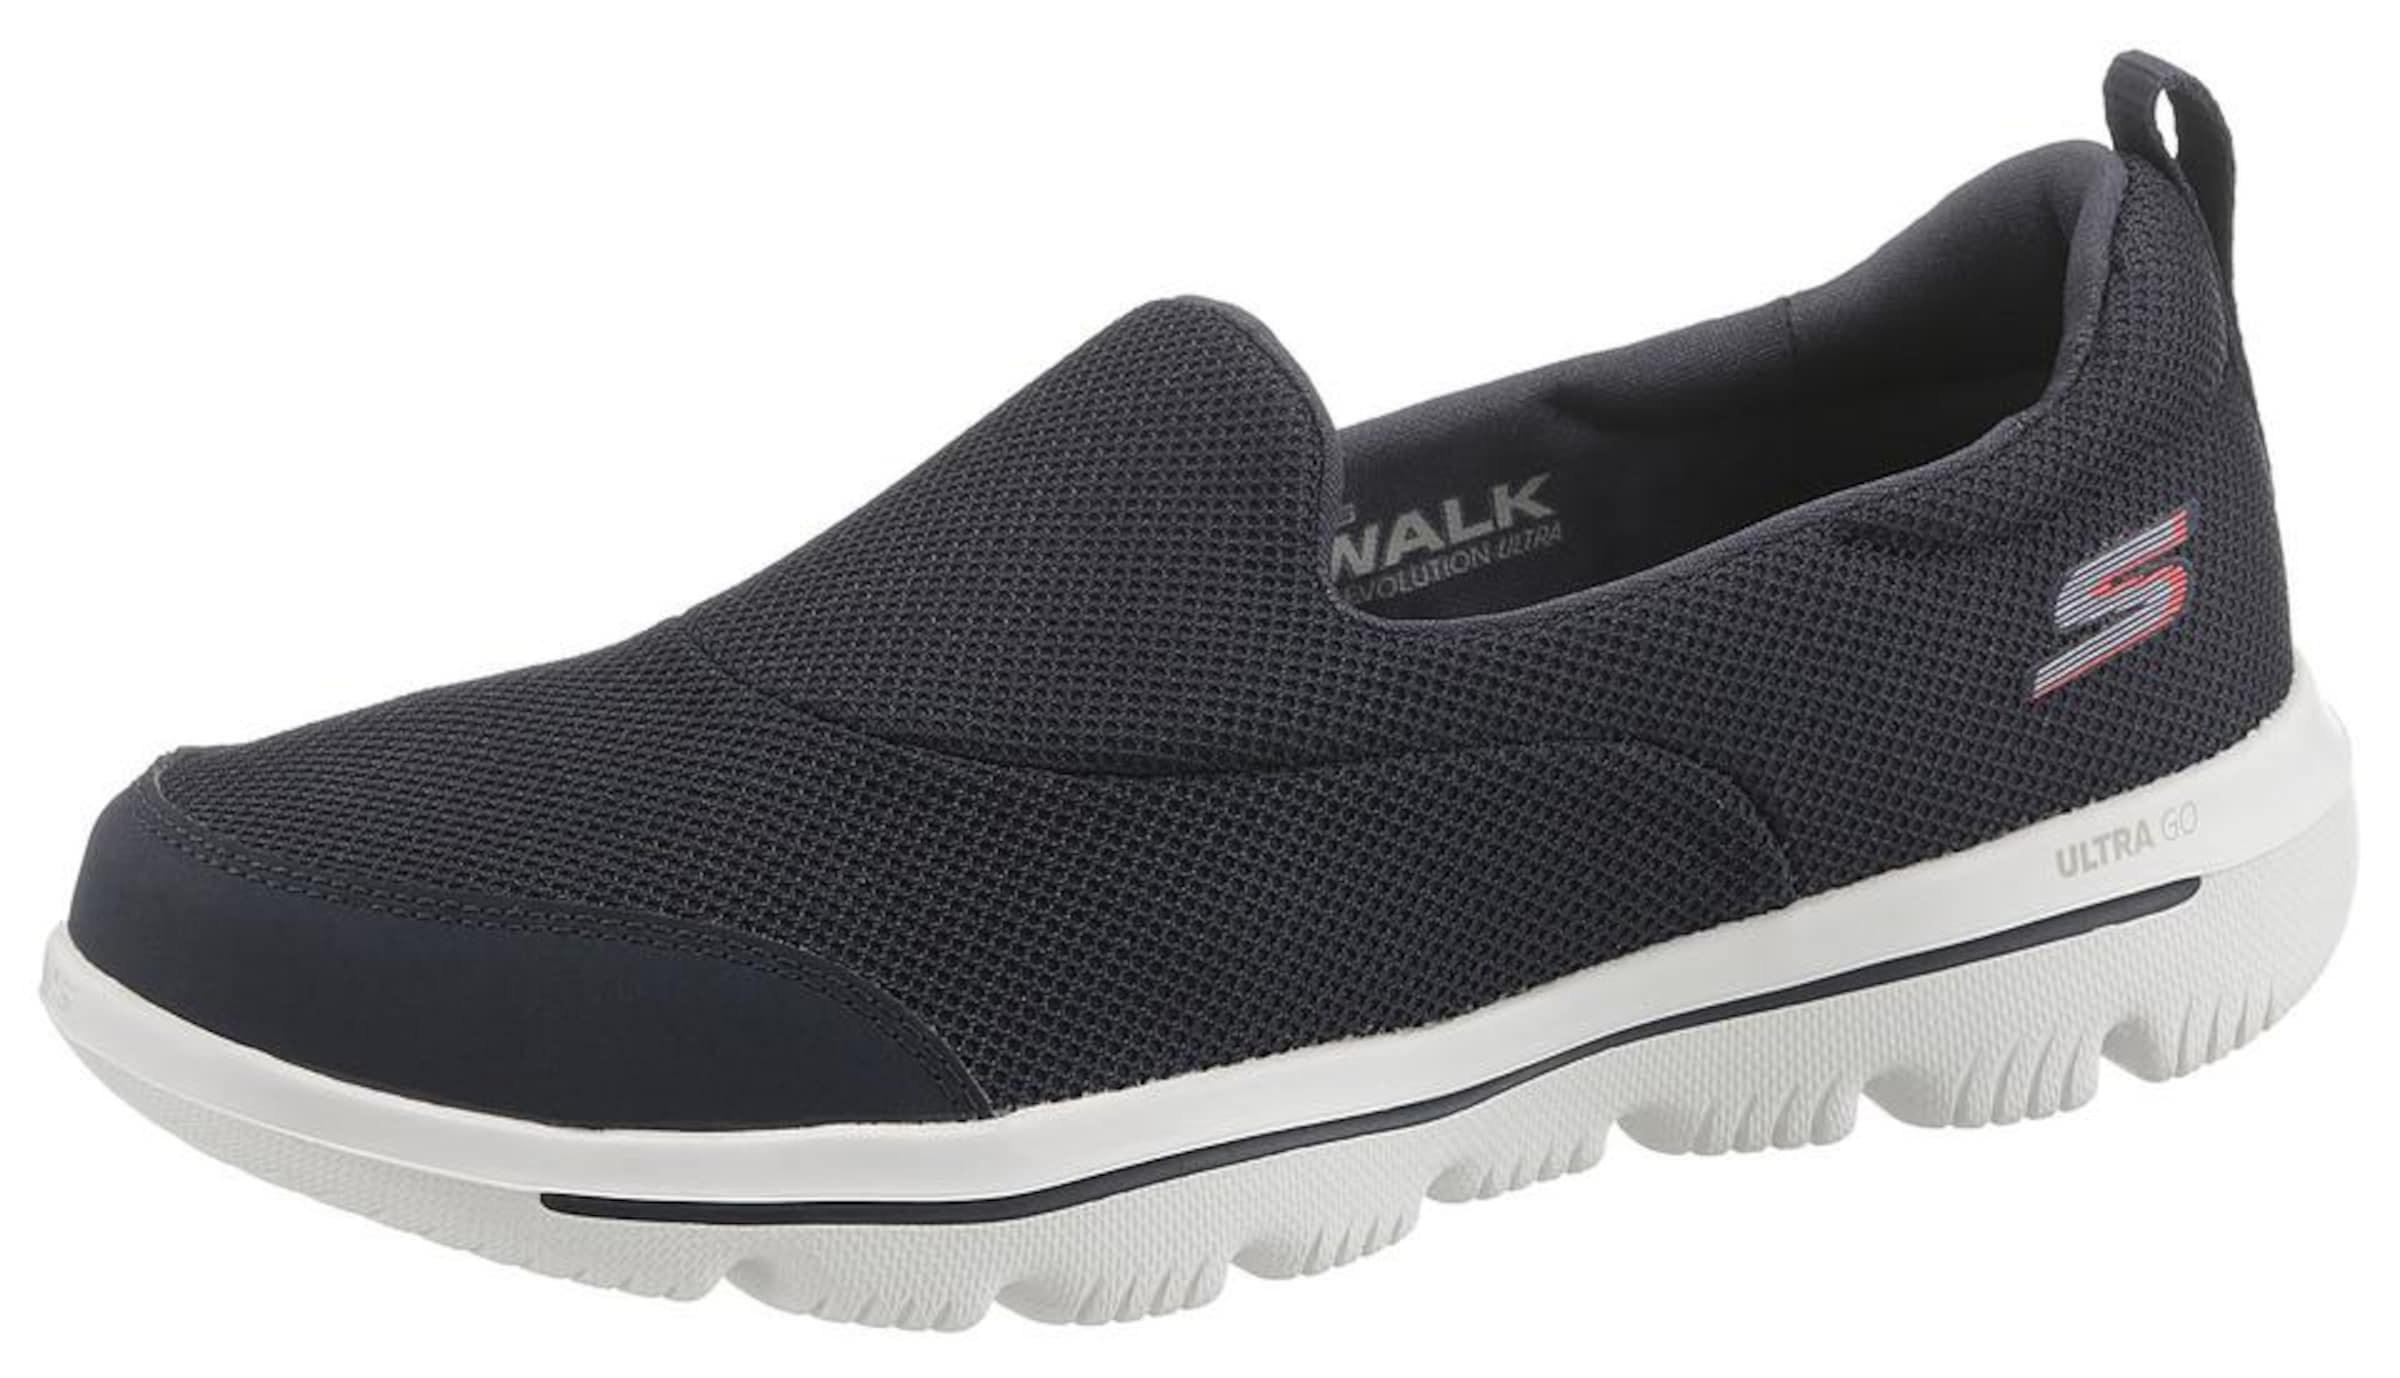 'go Skechers Evolution Walk Sneaker In Navy UltraReach' 5Lq3cj4AR